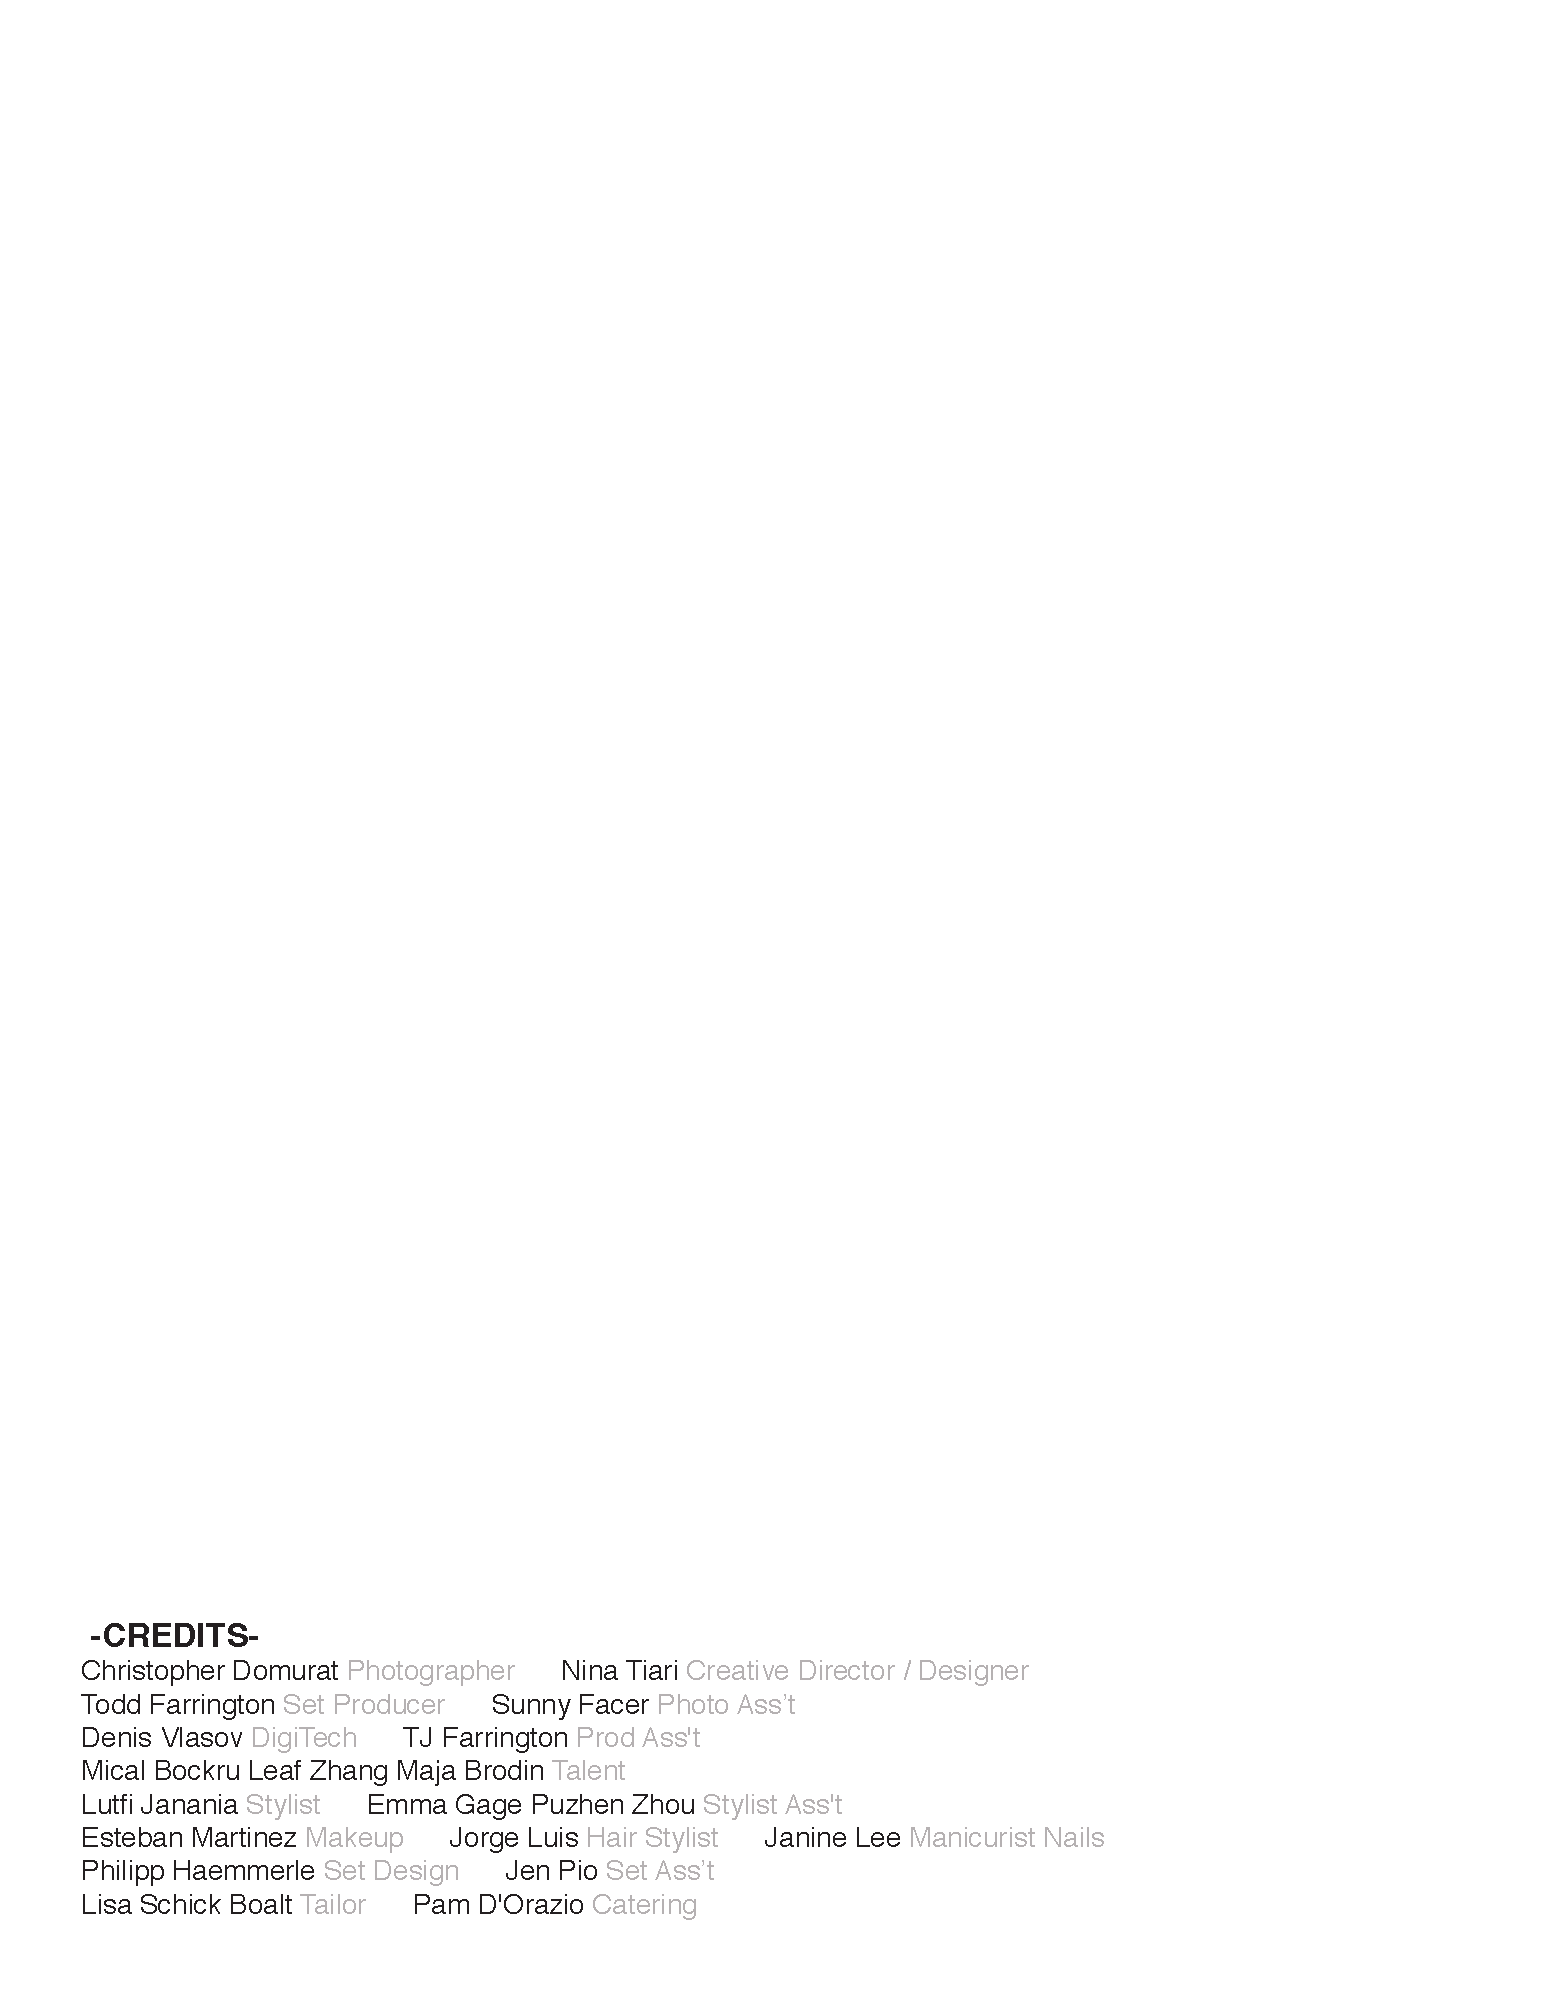 NTlookbookss18e(1)_Page_40.png